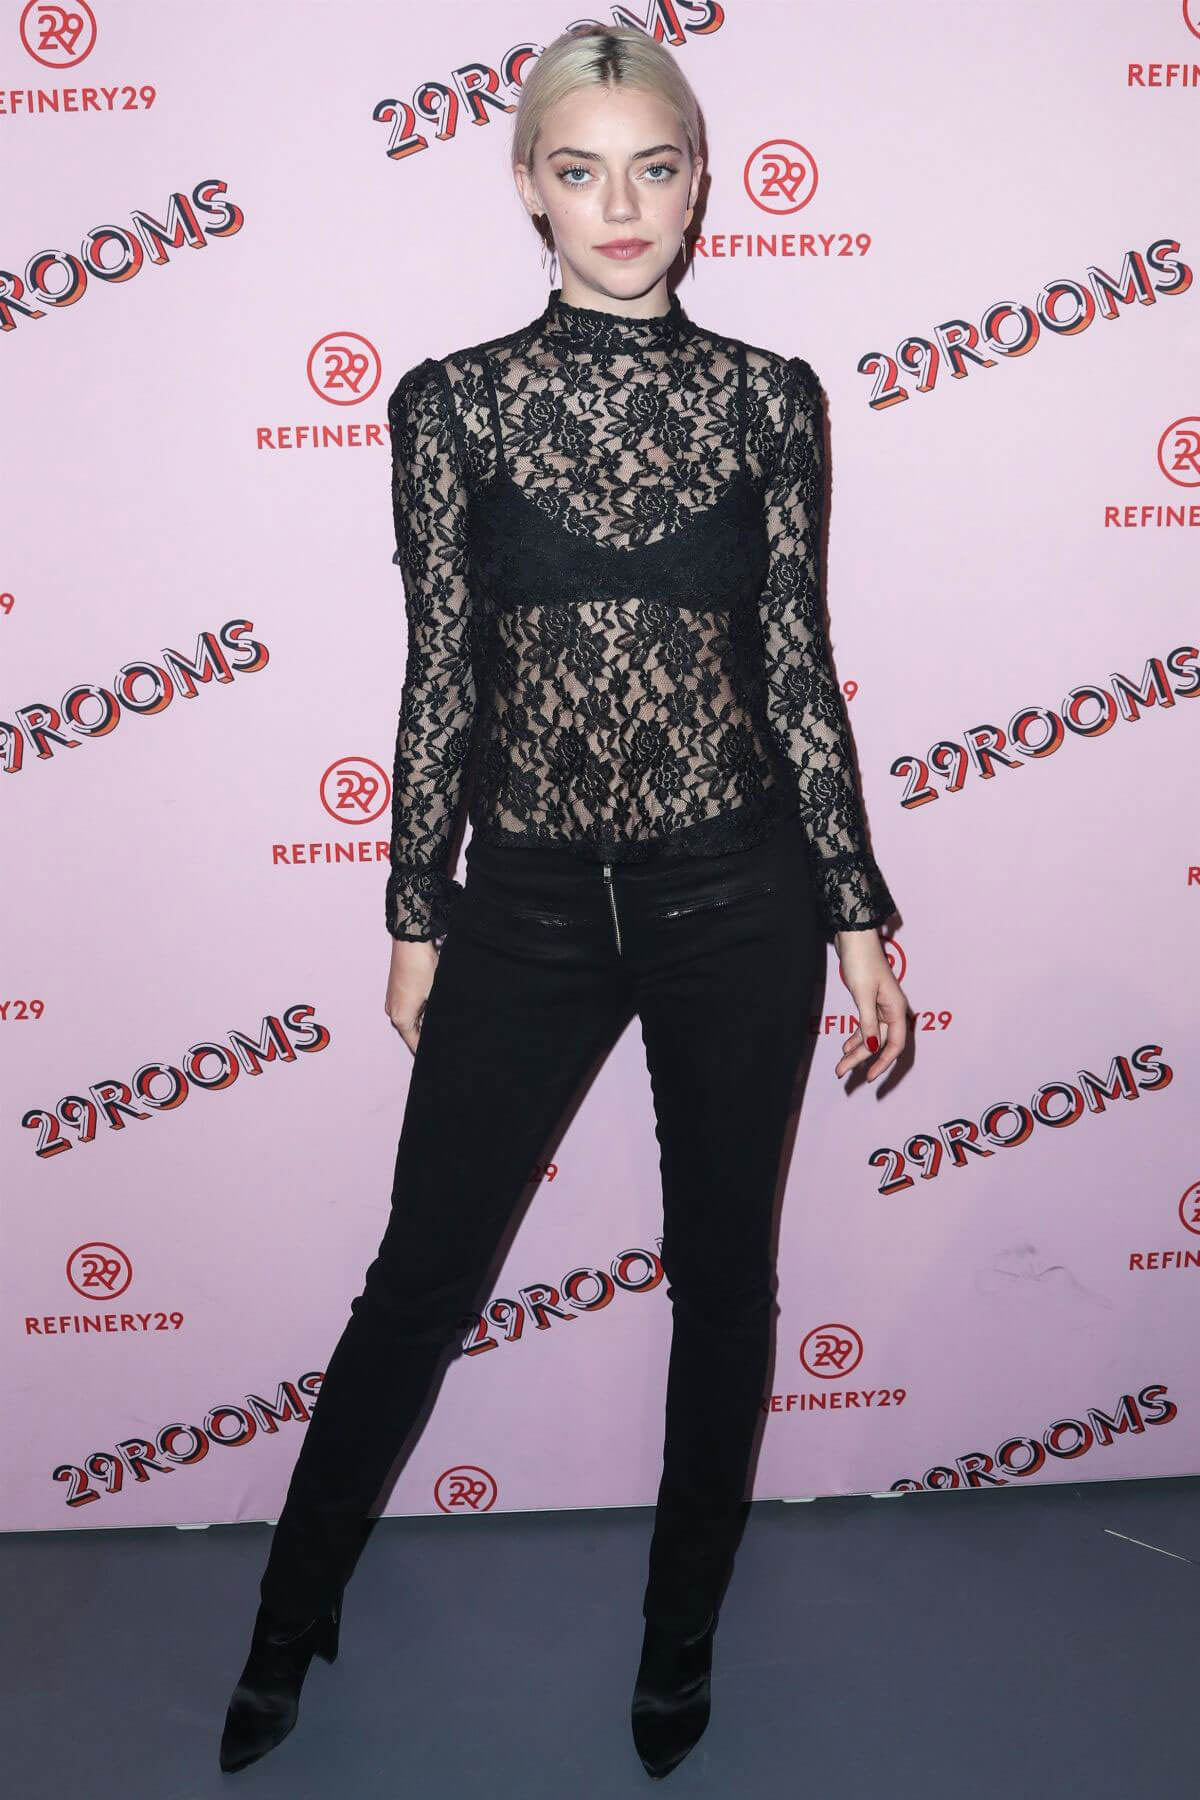 Pyper America Stills at Refinery29 29Rooms Los Angeles: Turn It Into Art Opening Party 2017/12/06